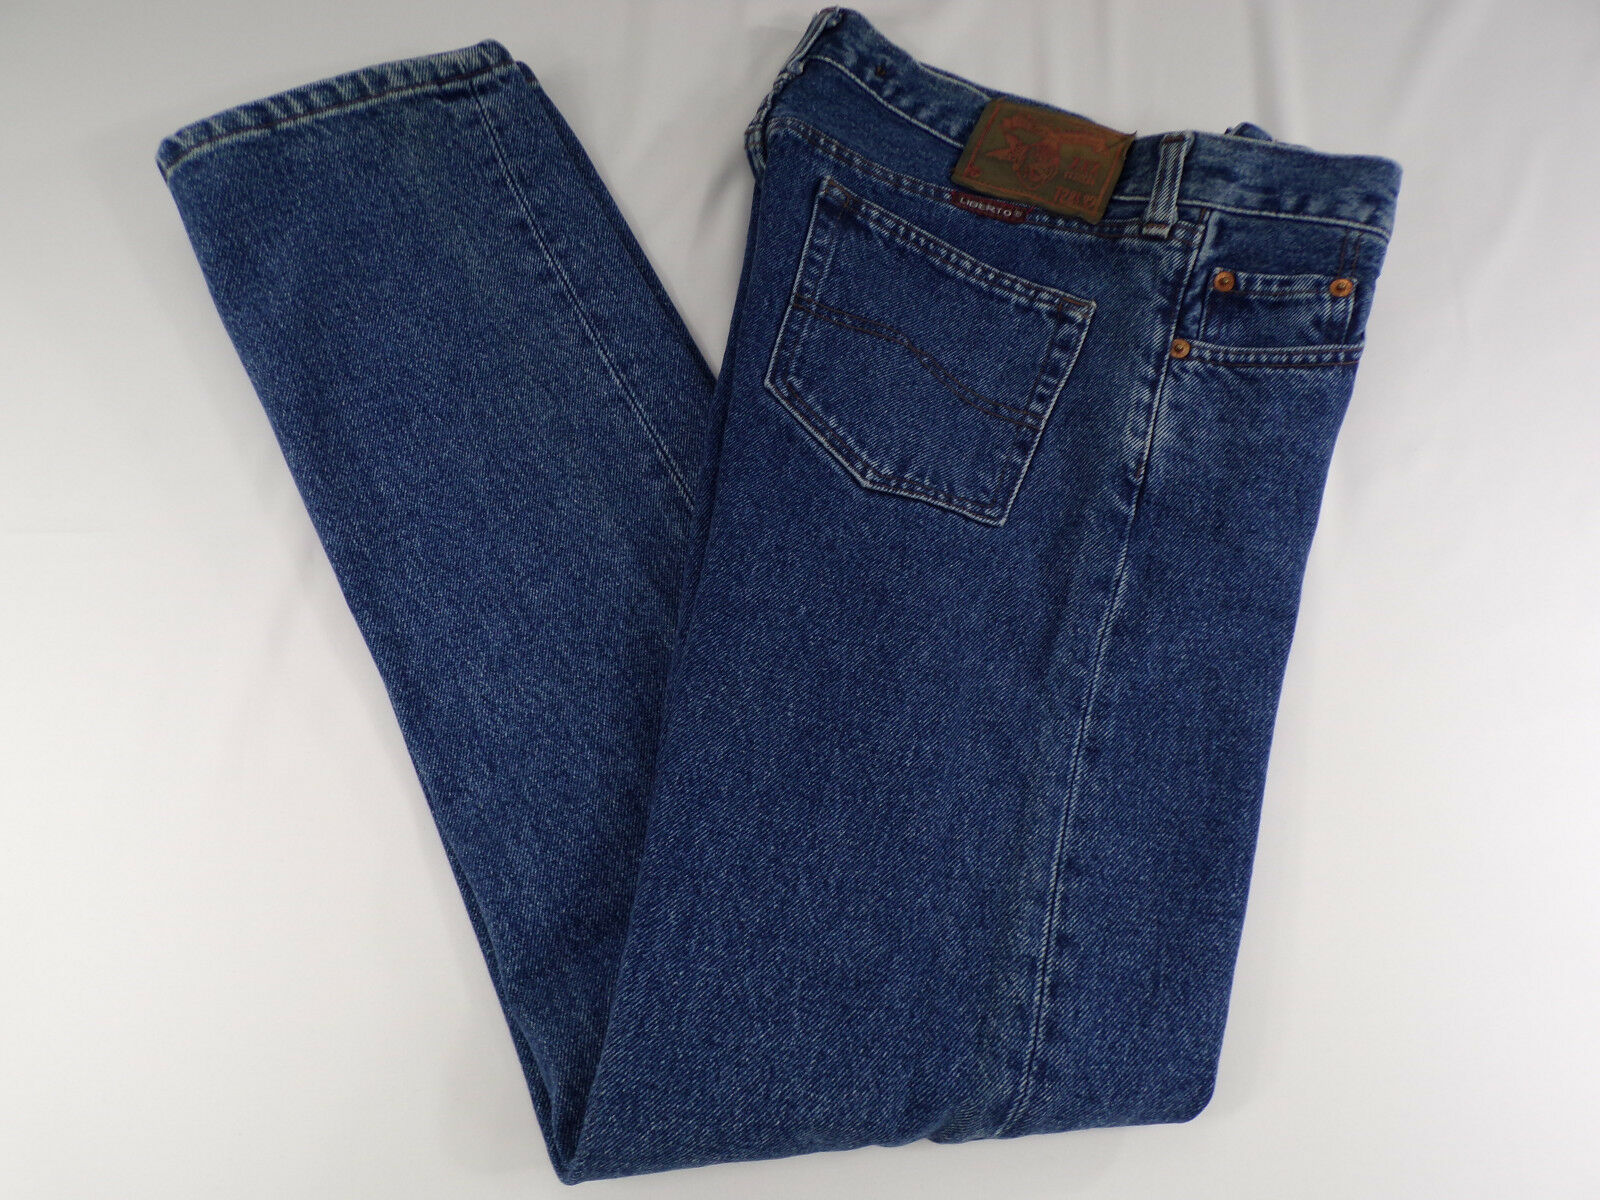 Vintage Liberto Womens 30 x 31 Slim Fit Jeans Zip Fly RARE  Miss Bade